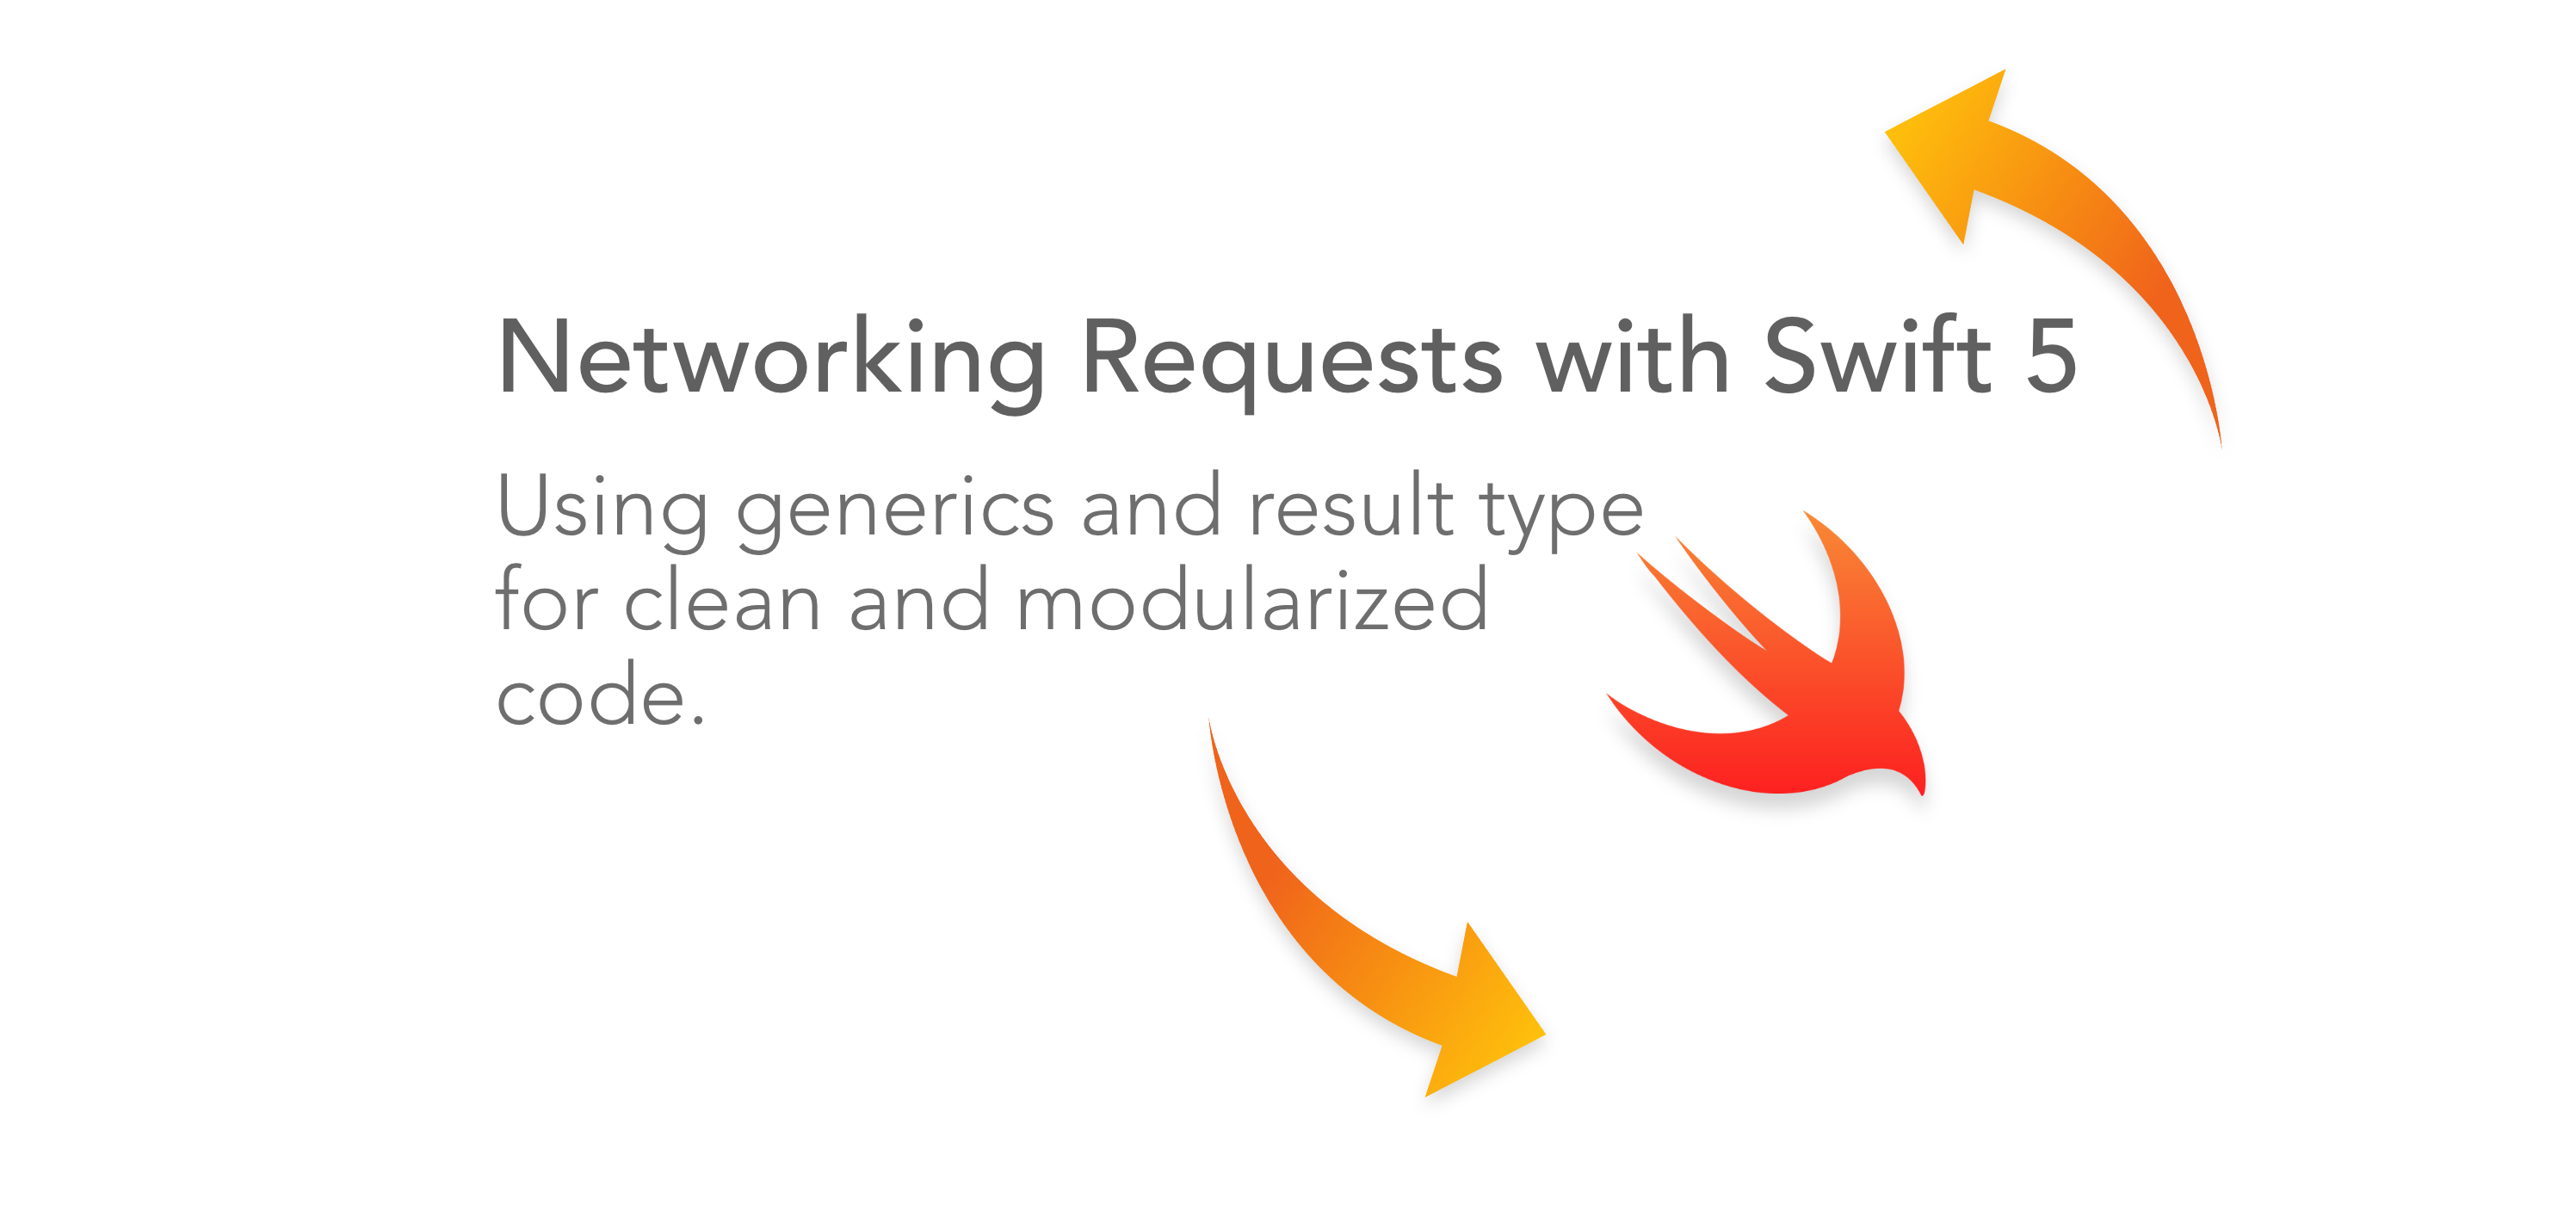 Download 9200 Koleksi Background Api Call In Swift Gratis Terbaru